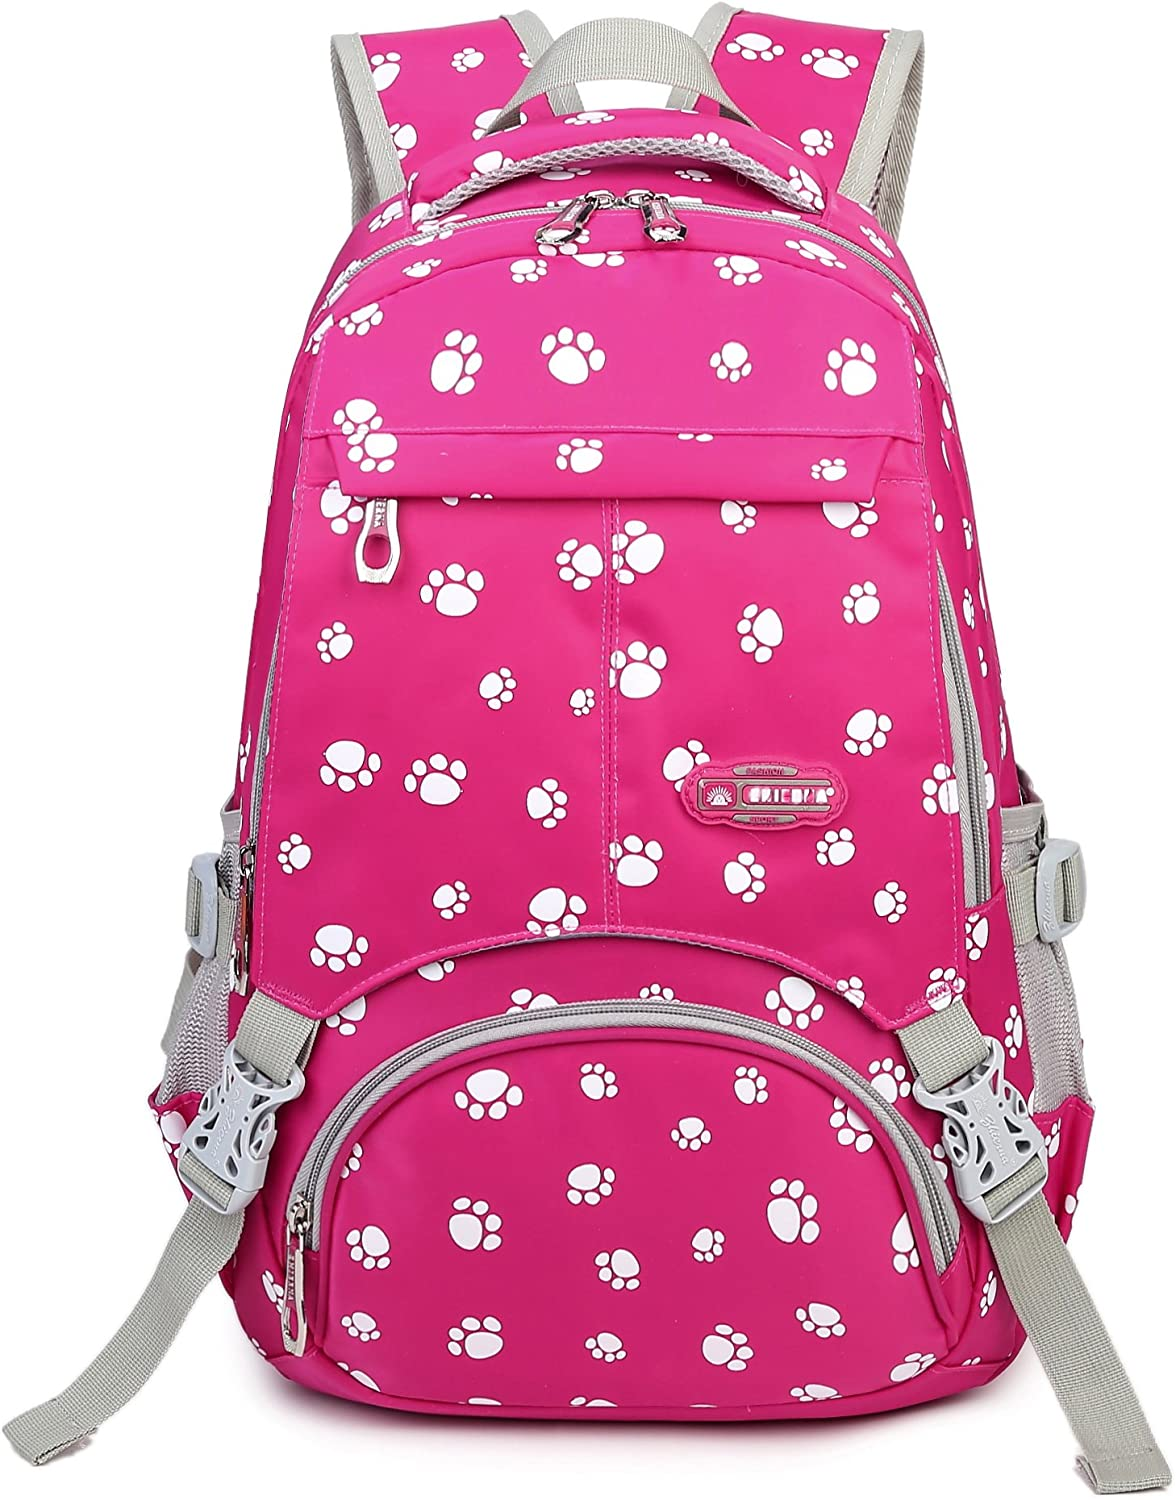 Presents Gifts for Girls Bookbags for kids Primary School Bags Backpacks for Children (Hot Pink)